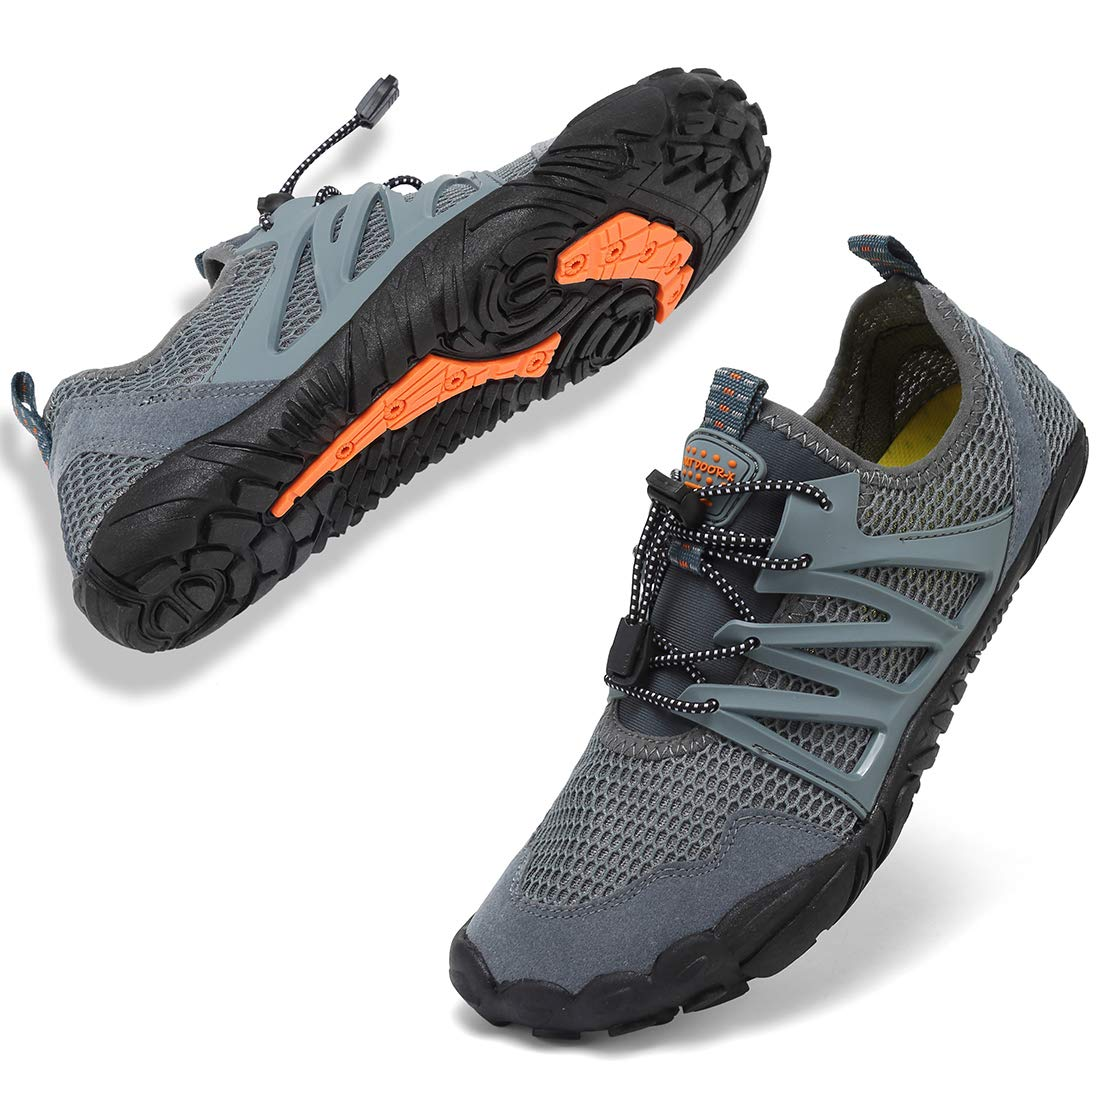 VIFUUR Mens Womens Aqua Shoes Quick Dry Water Shoes Outdoor Indoor Shoes Boating Kayaking Diving Beach Swim MGray 43 by VIFUUR